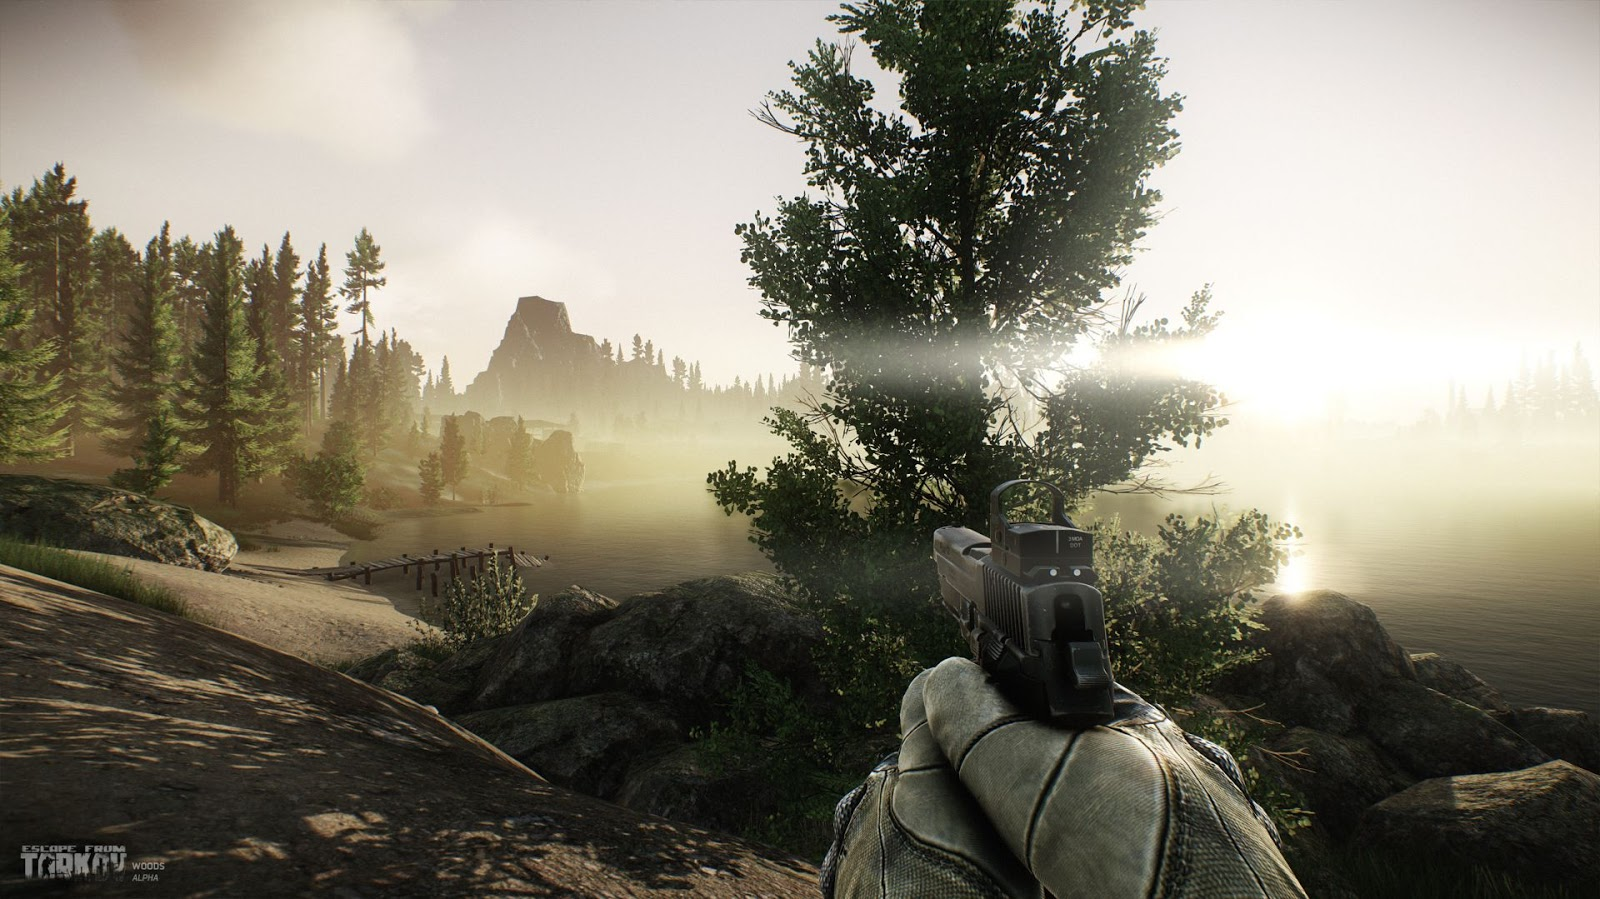 How to download escape from tarkov free